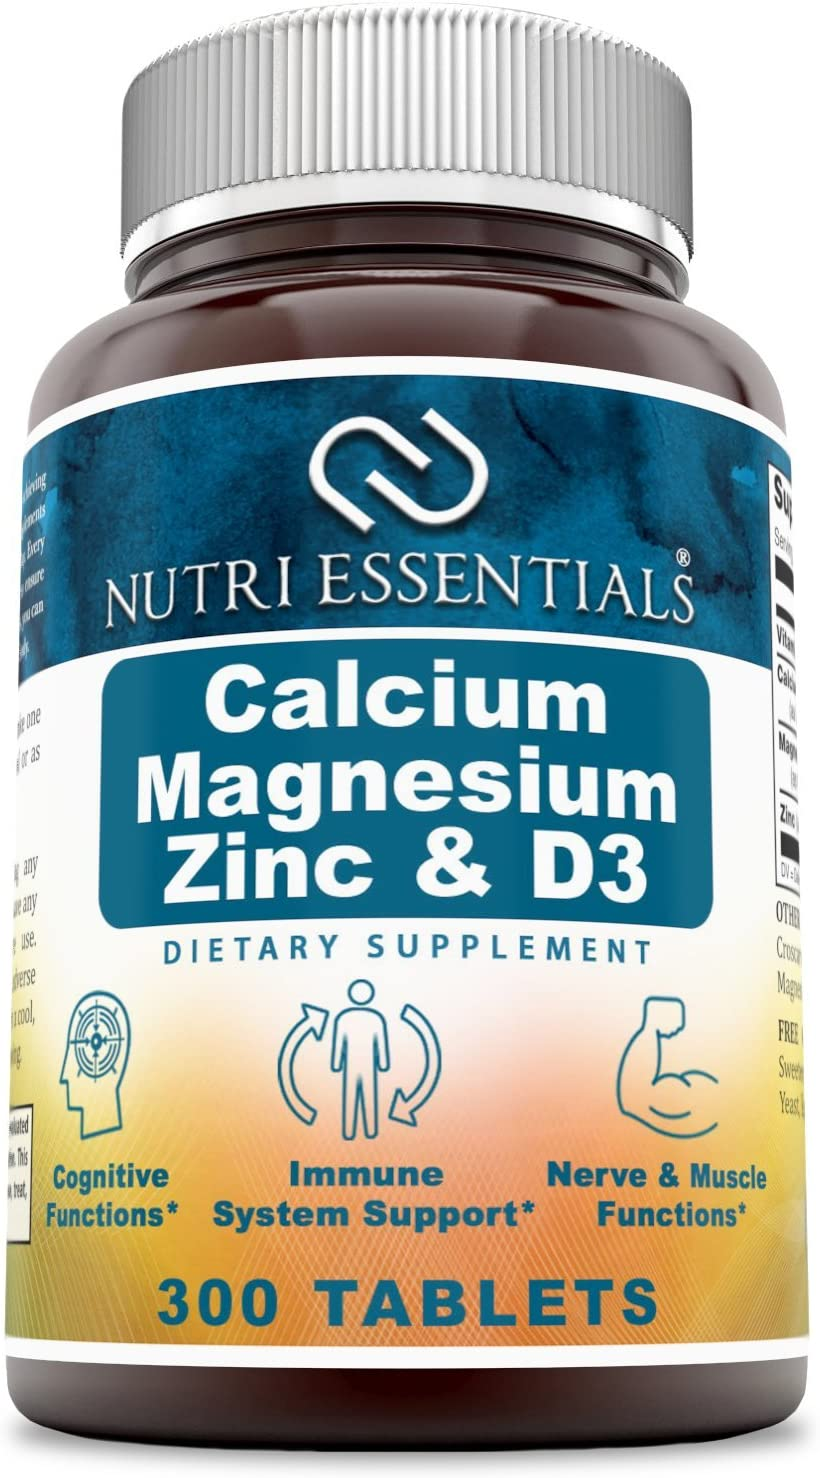 Nutri Essentials Calcium Magnesium Zinc + Vitamin D3 300 Tablets- Promotes Strong Bones & Teeth, Support Nerve & Muscle Function*